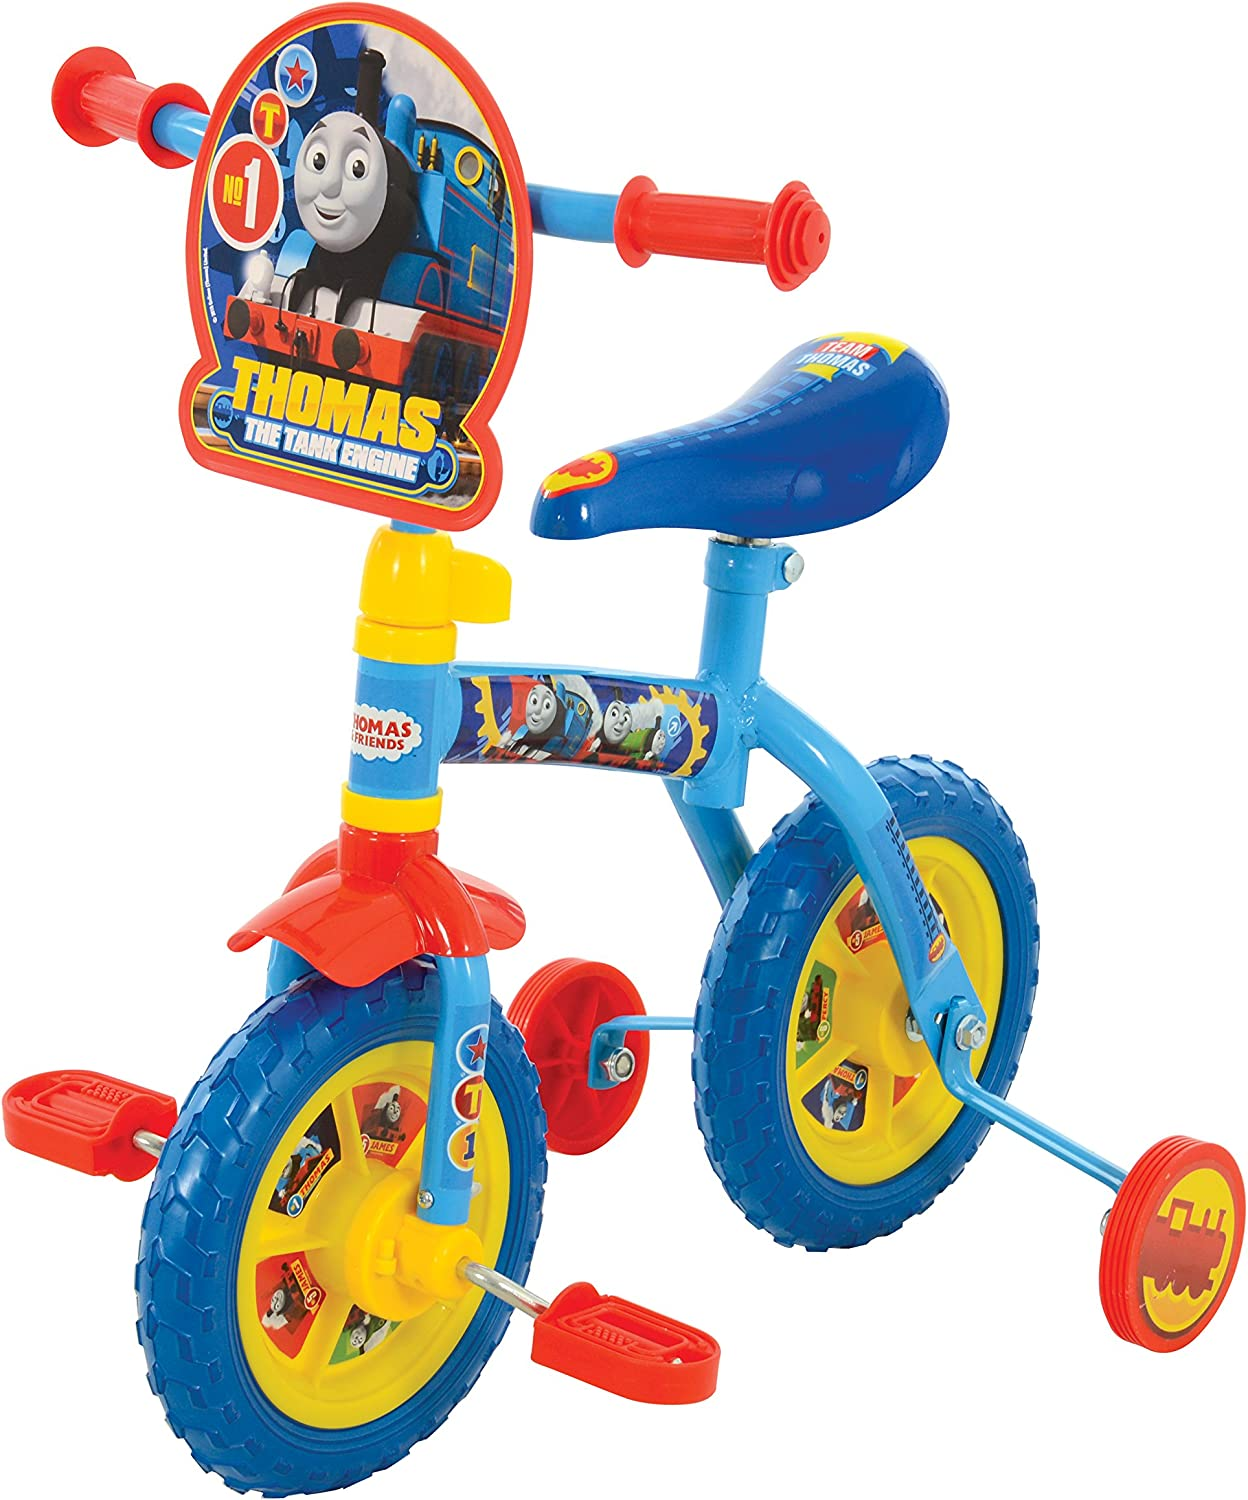 Thomas & Friends M14631 2in1 10inch Training Bike Thomas 2 in 1 10 , bluee